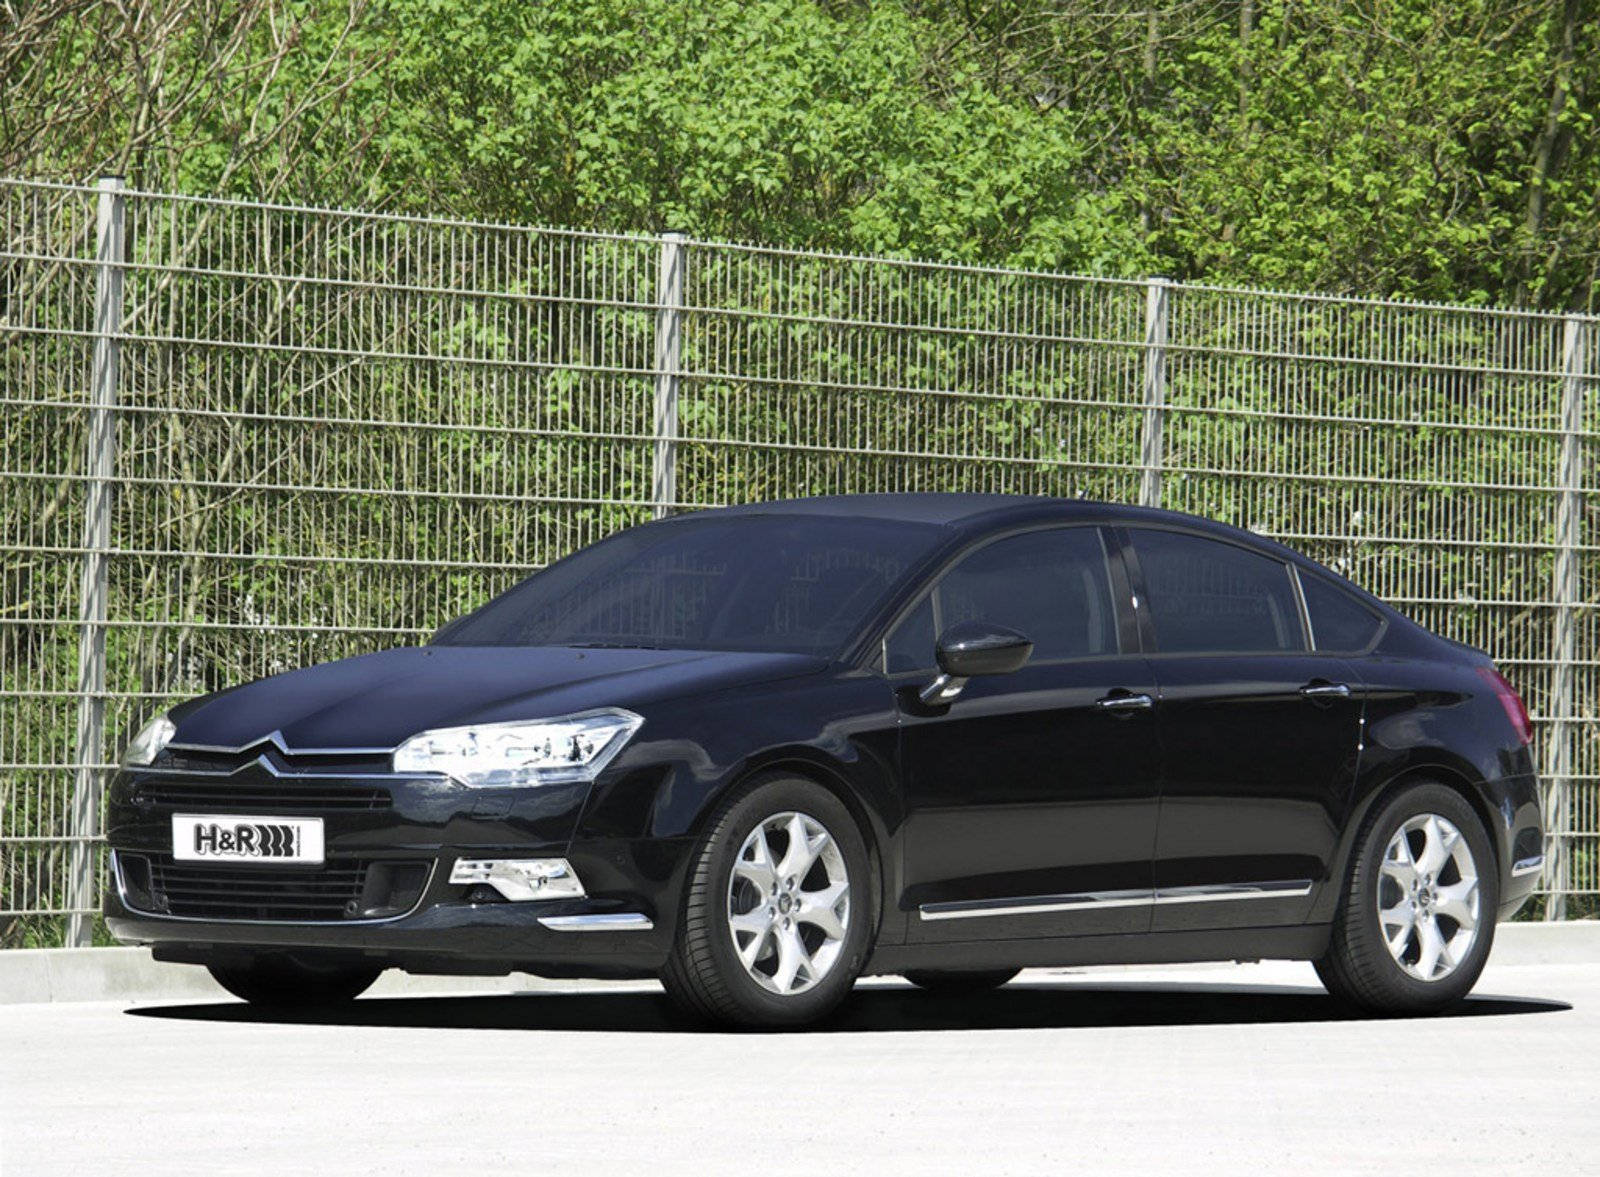 Citroen C5 II 2008 - now Sedan #4